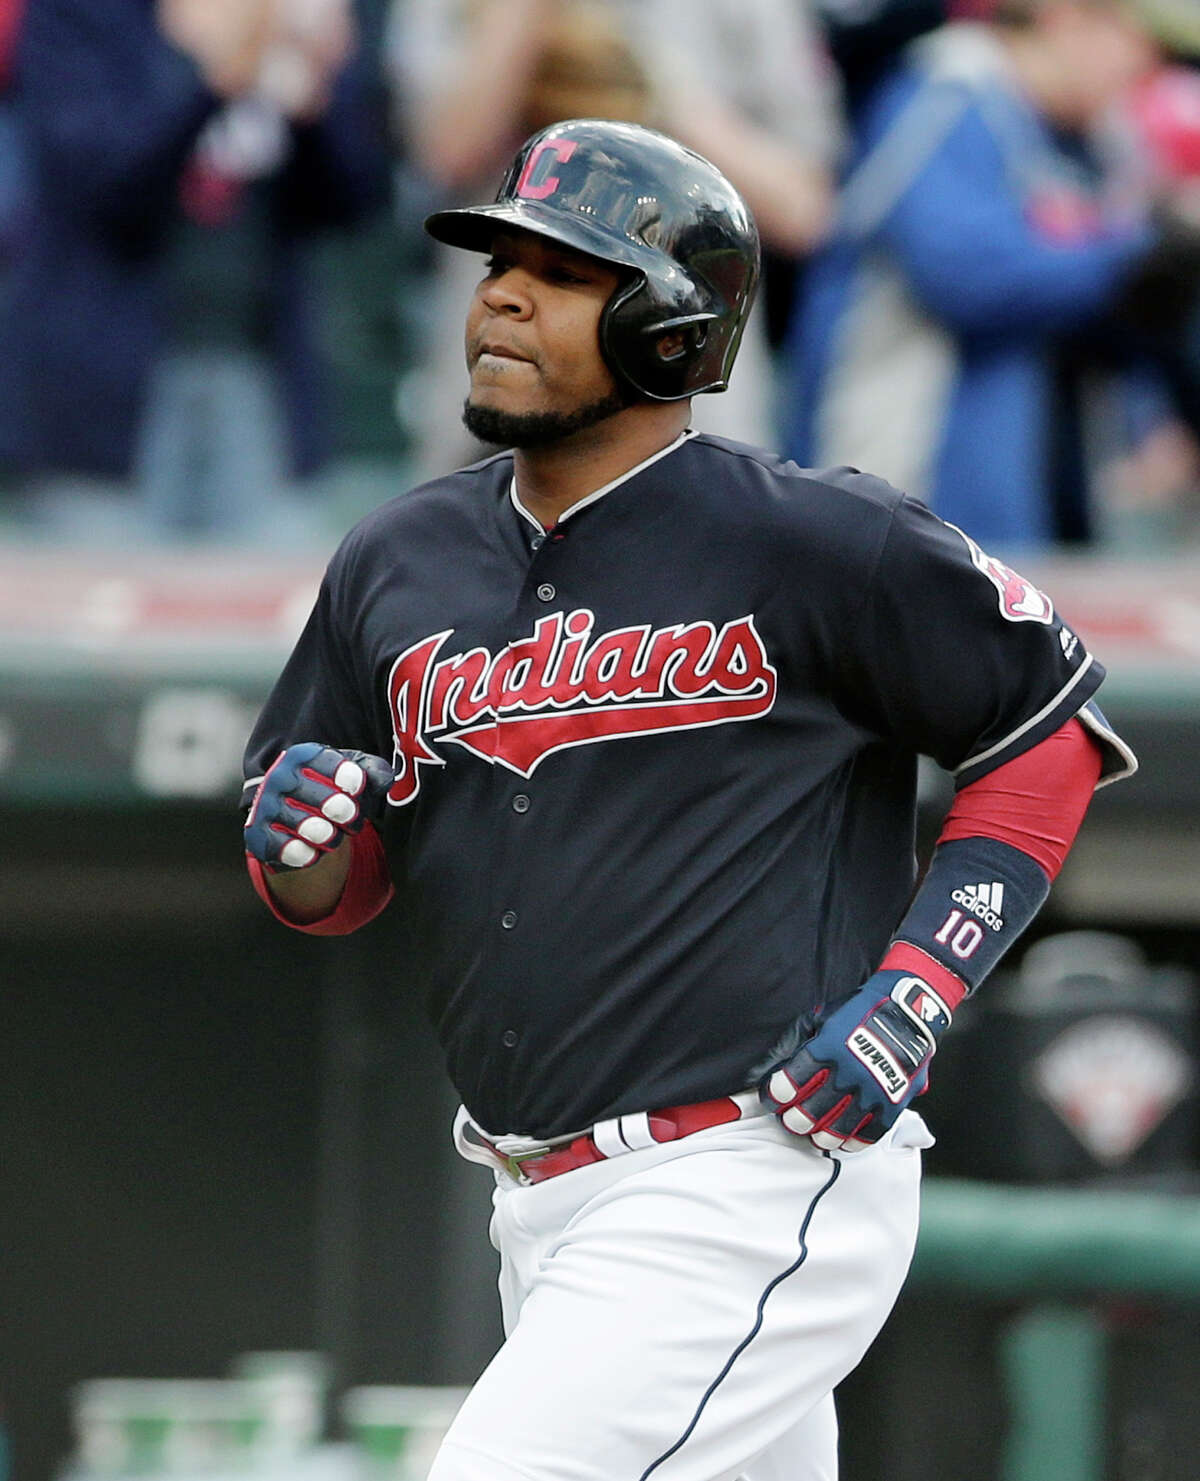 Cleveland Indians' Edwin Encarnacion runs the bases after hitting a solo home run off Houston Astros starting pitcher Mike Fiers during the second inning of a baseball game, Thursday, April 27, 2017, in Cleveland. (AP Photo/Tony Dejak)